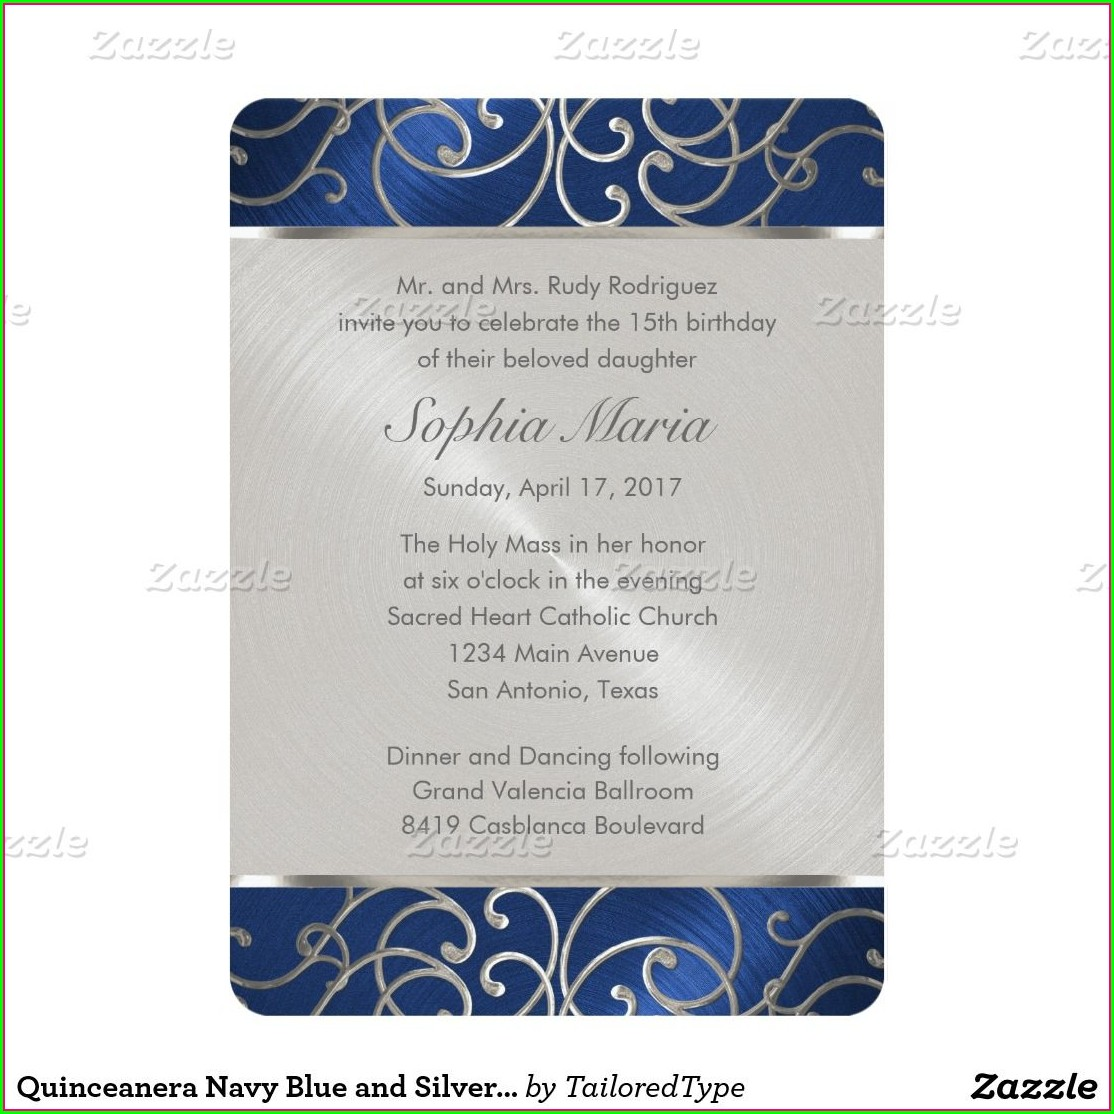 Quinceanera Invitations Navy Blue And Silver